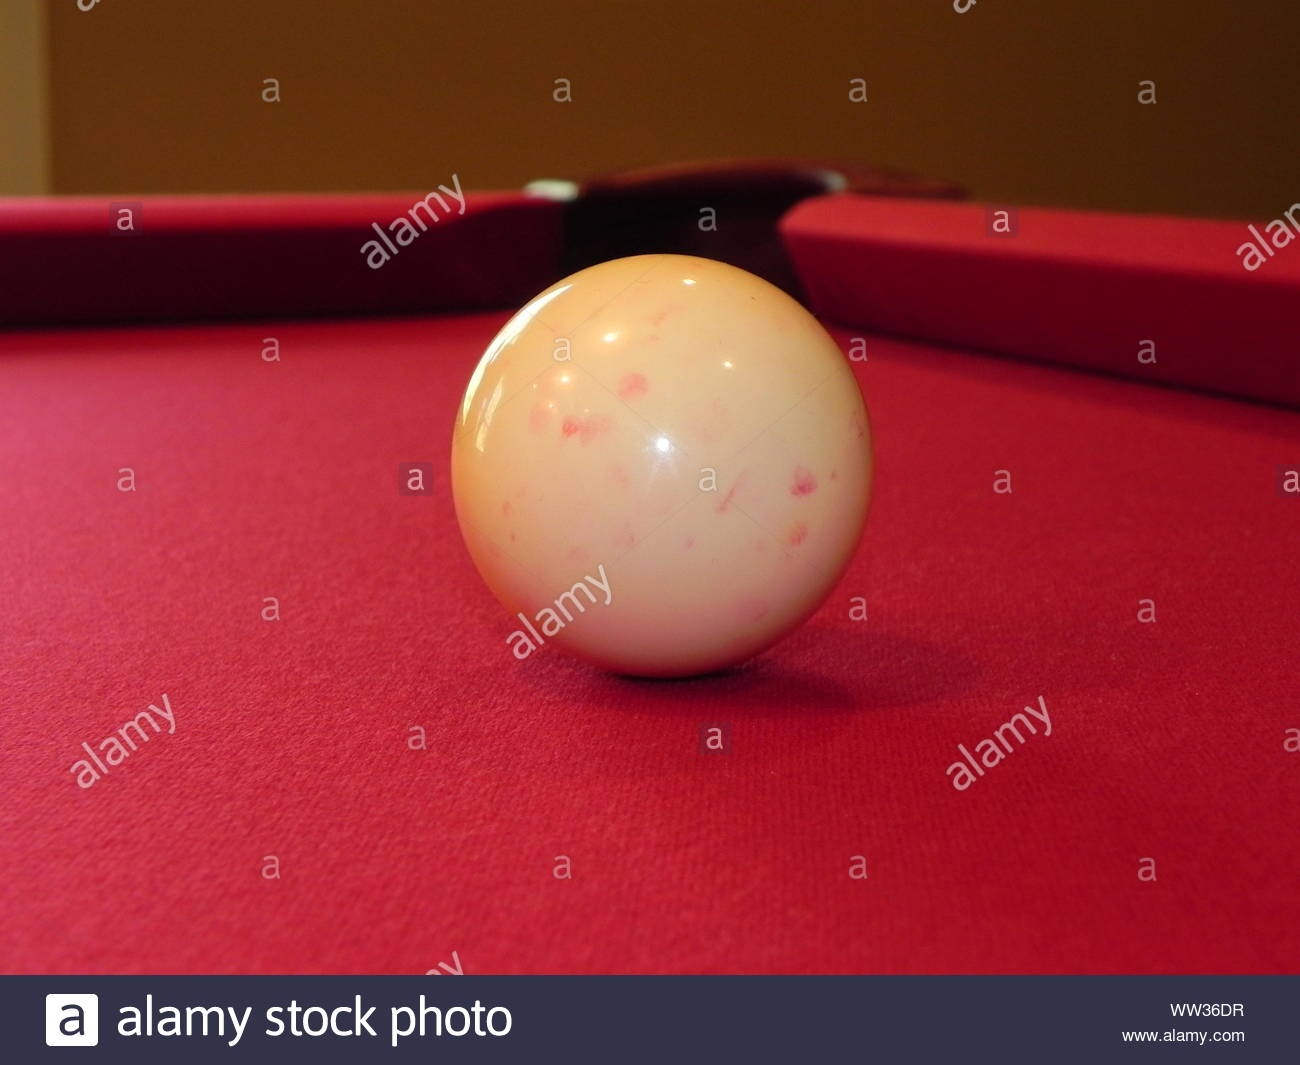 La Chaise Longue Billard red pool table photos & red pool table images - alamy